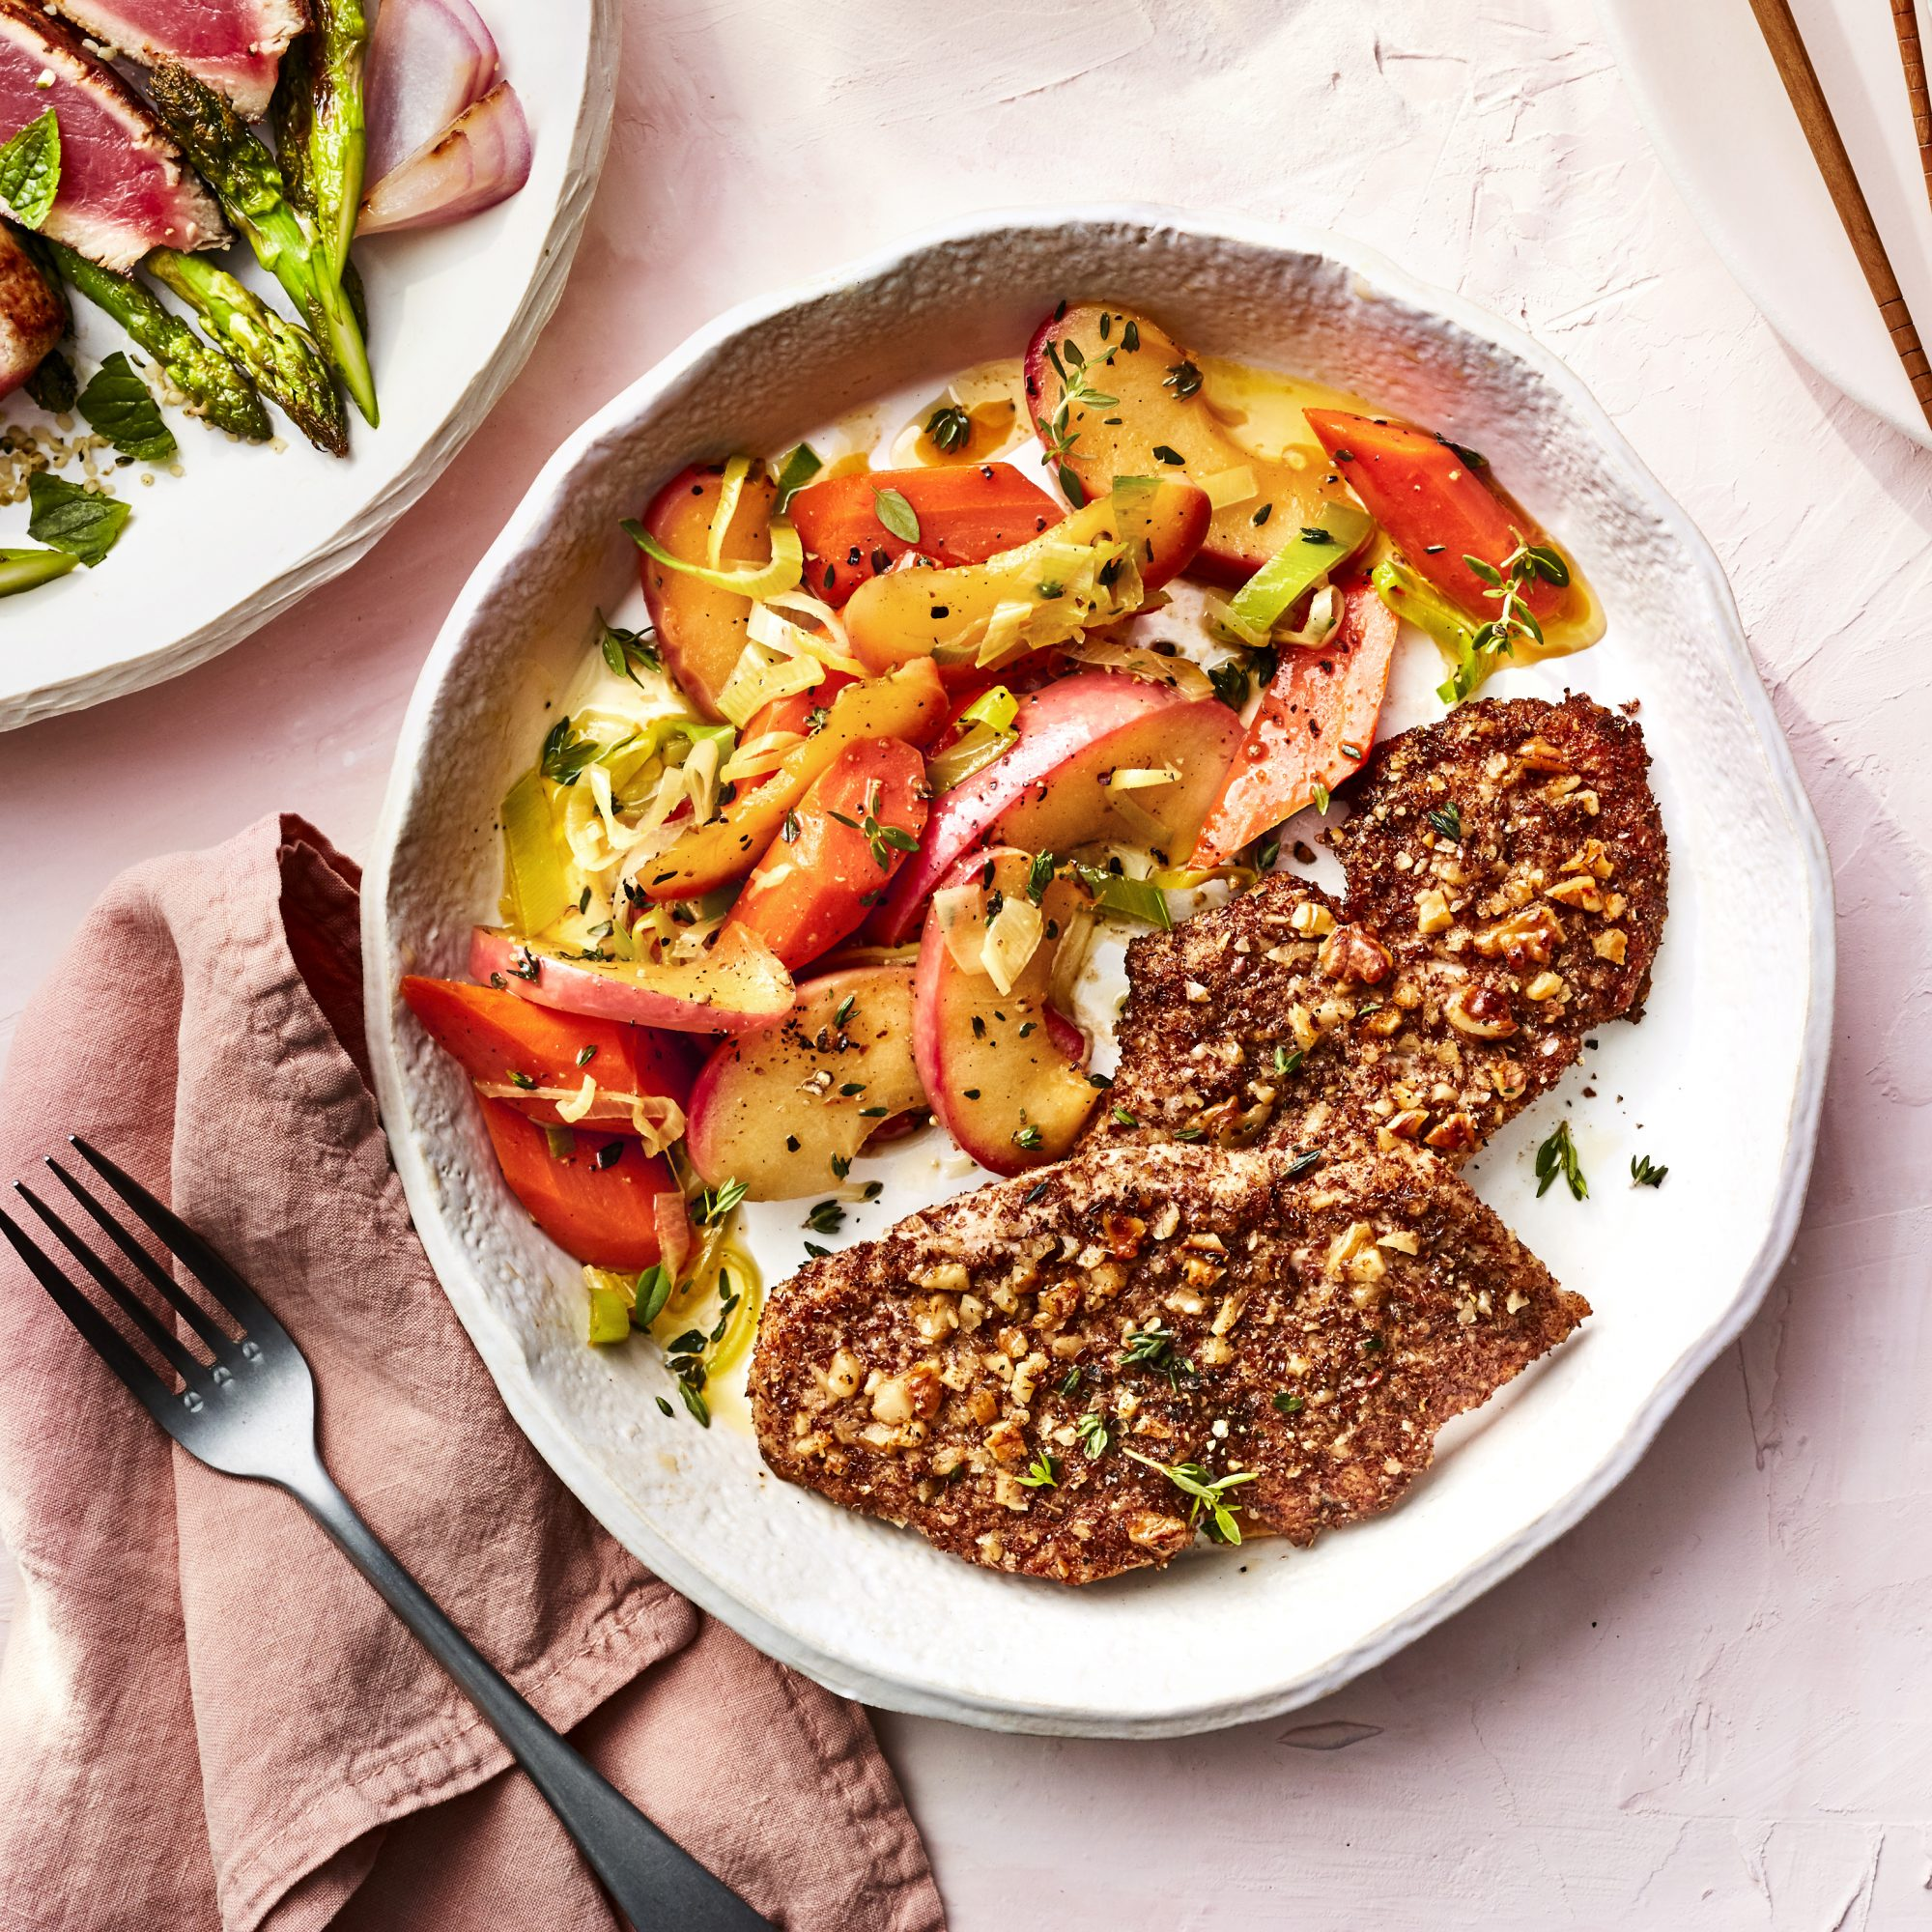 MARCH 2019 health magazine woman diet food recipe WALNUT-CRUSTED TURKEY WITH LEEKS AND APPLES